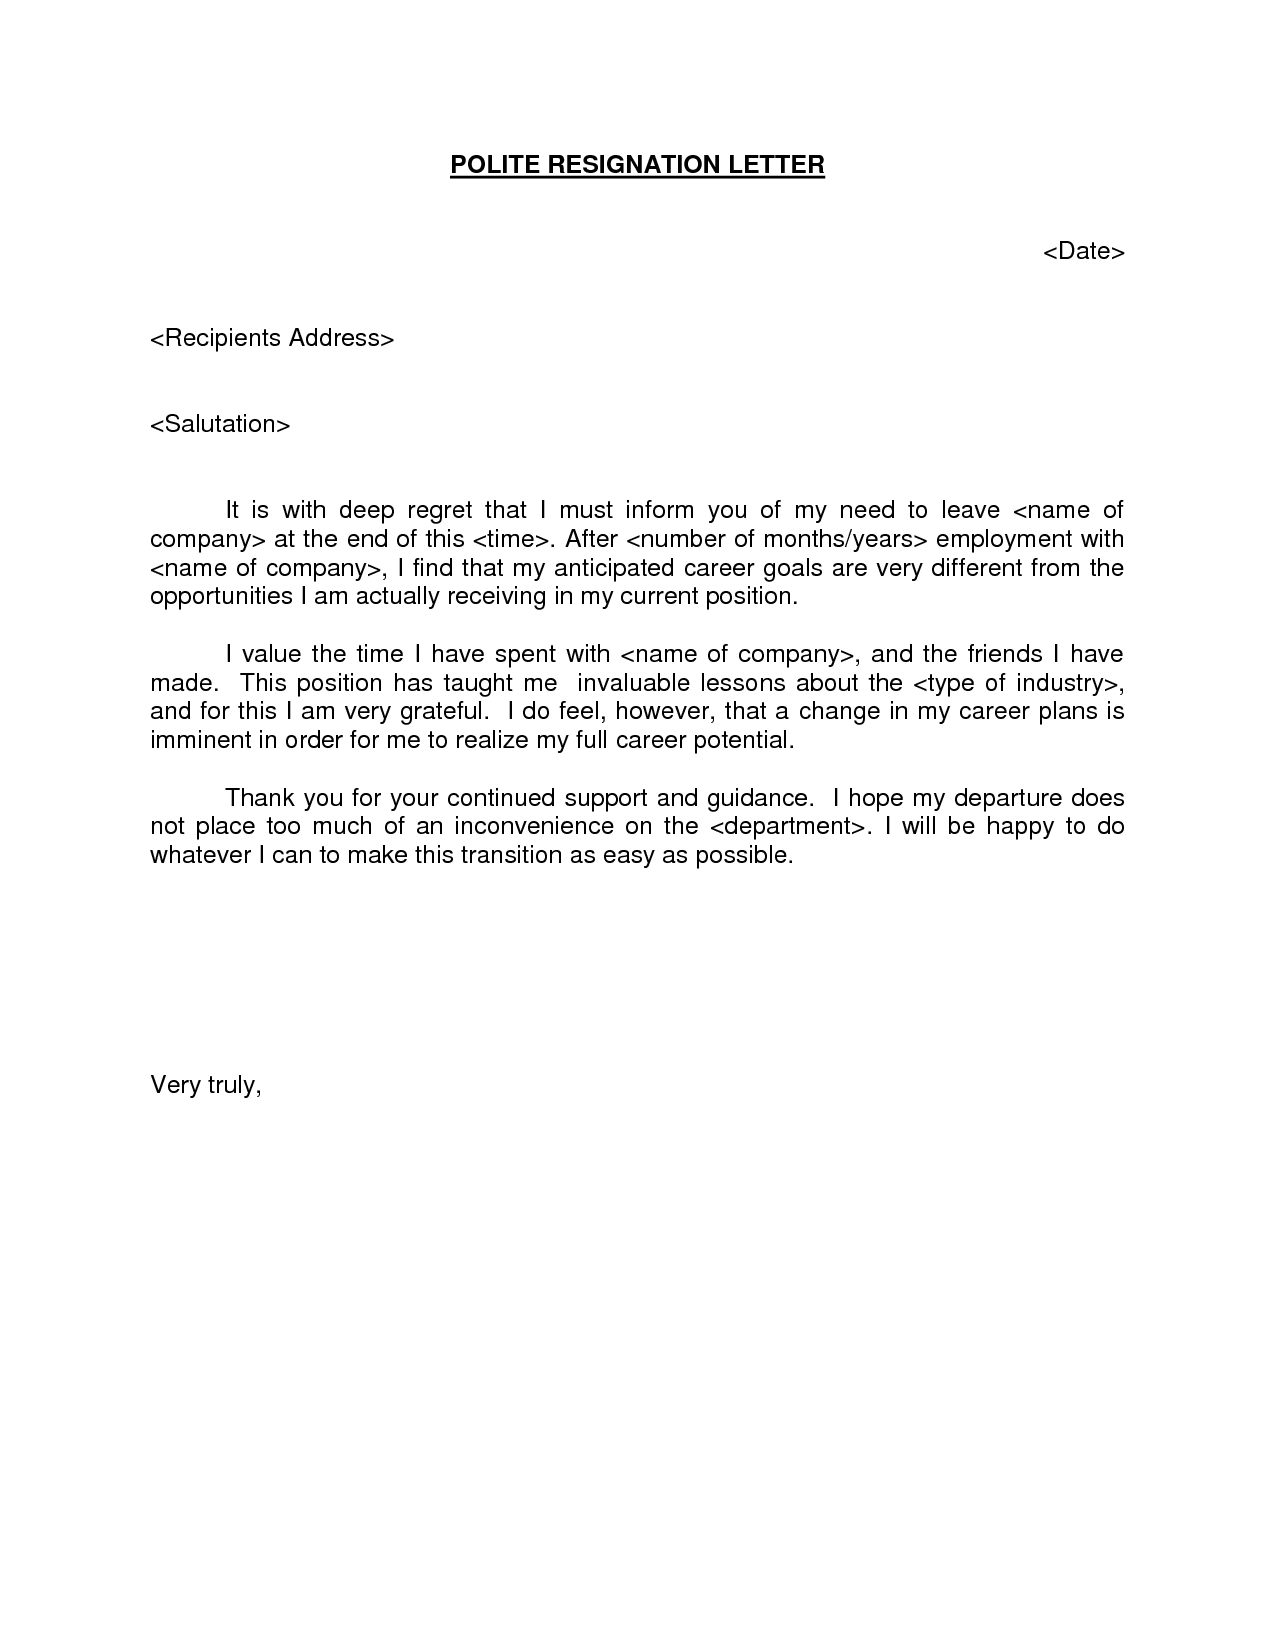 Beautiful POLITE RESIGNATION LETTER BestdealformoneyWriting A Letter Of Resignation  Email Letter Sample